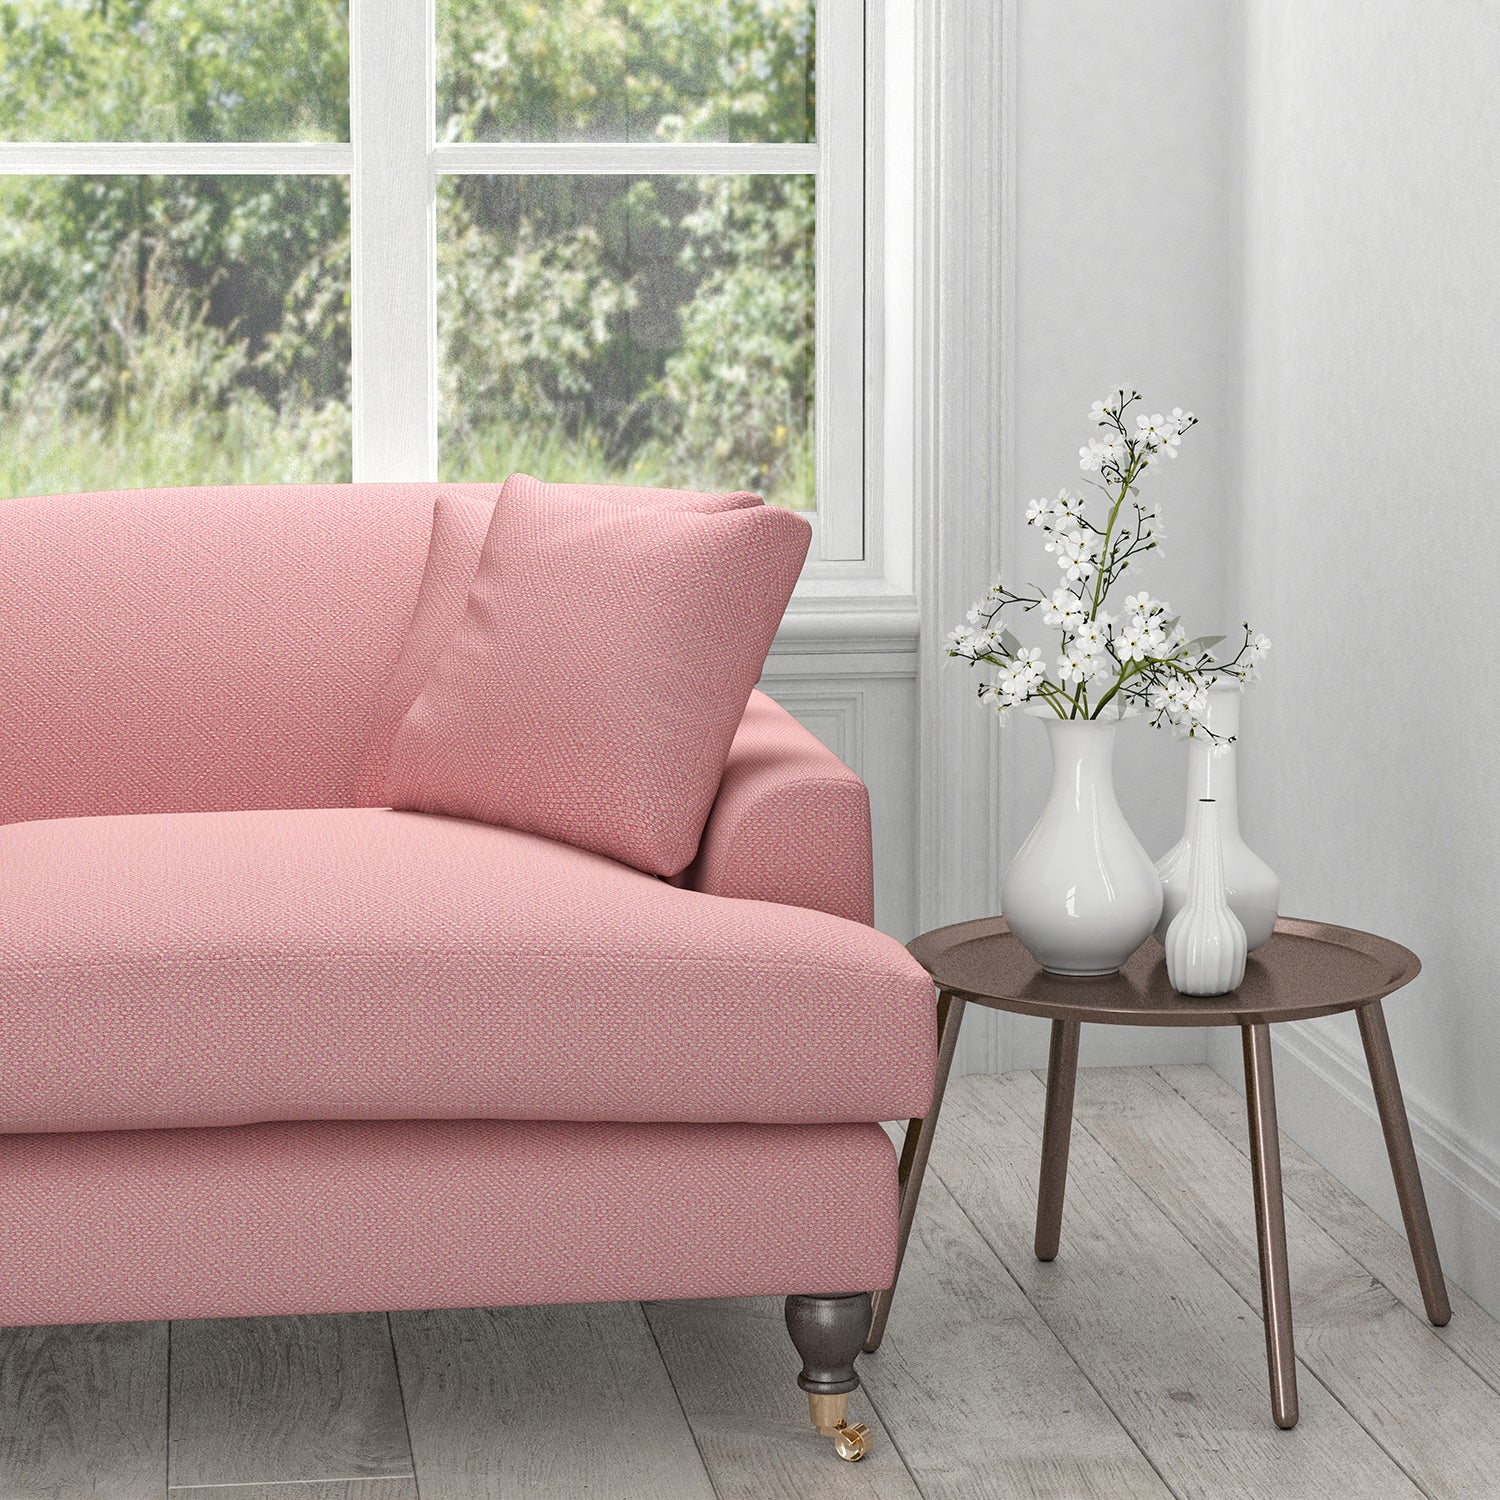 Sofa in a pink fabric with a light geometric woven design